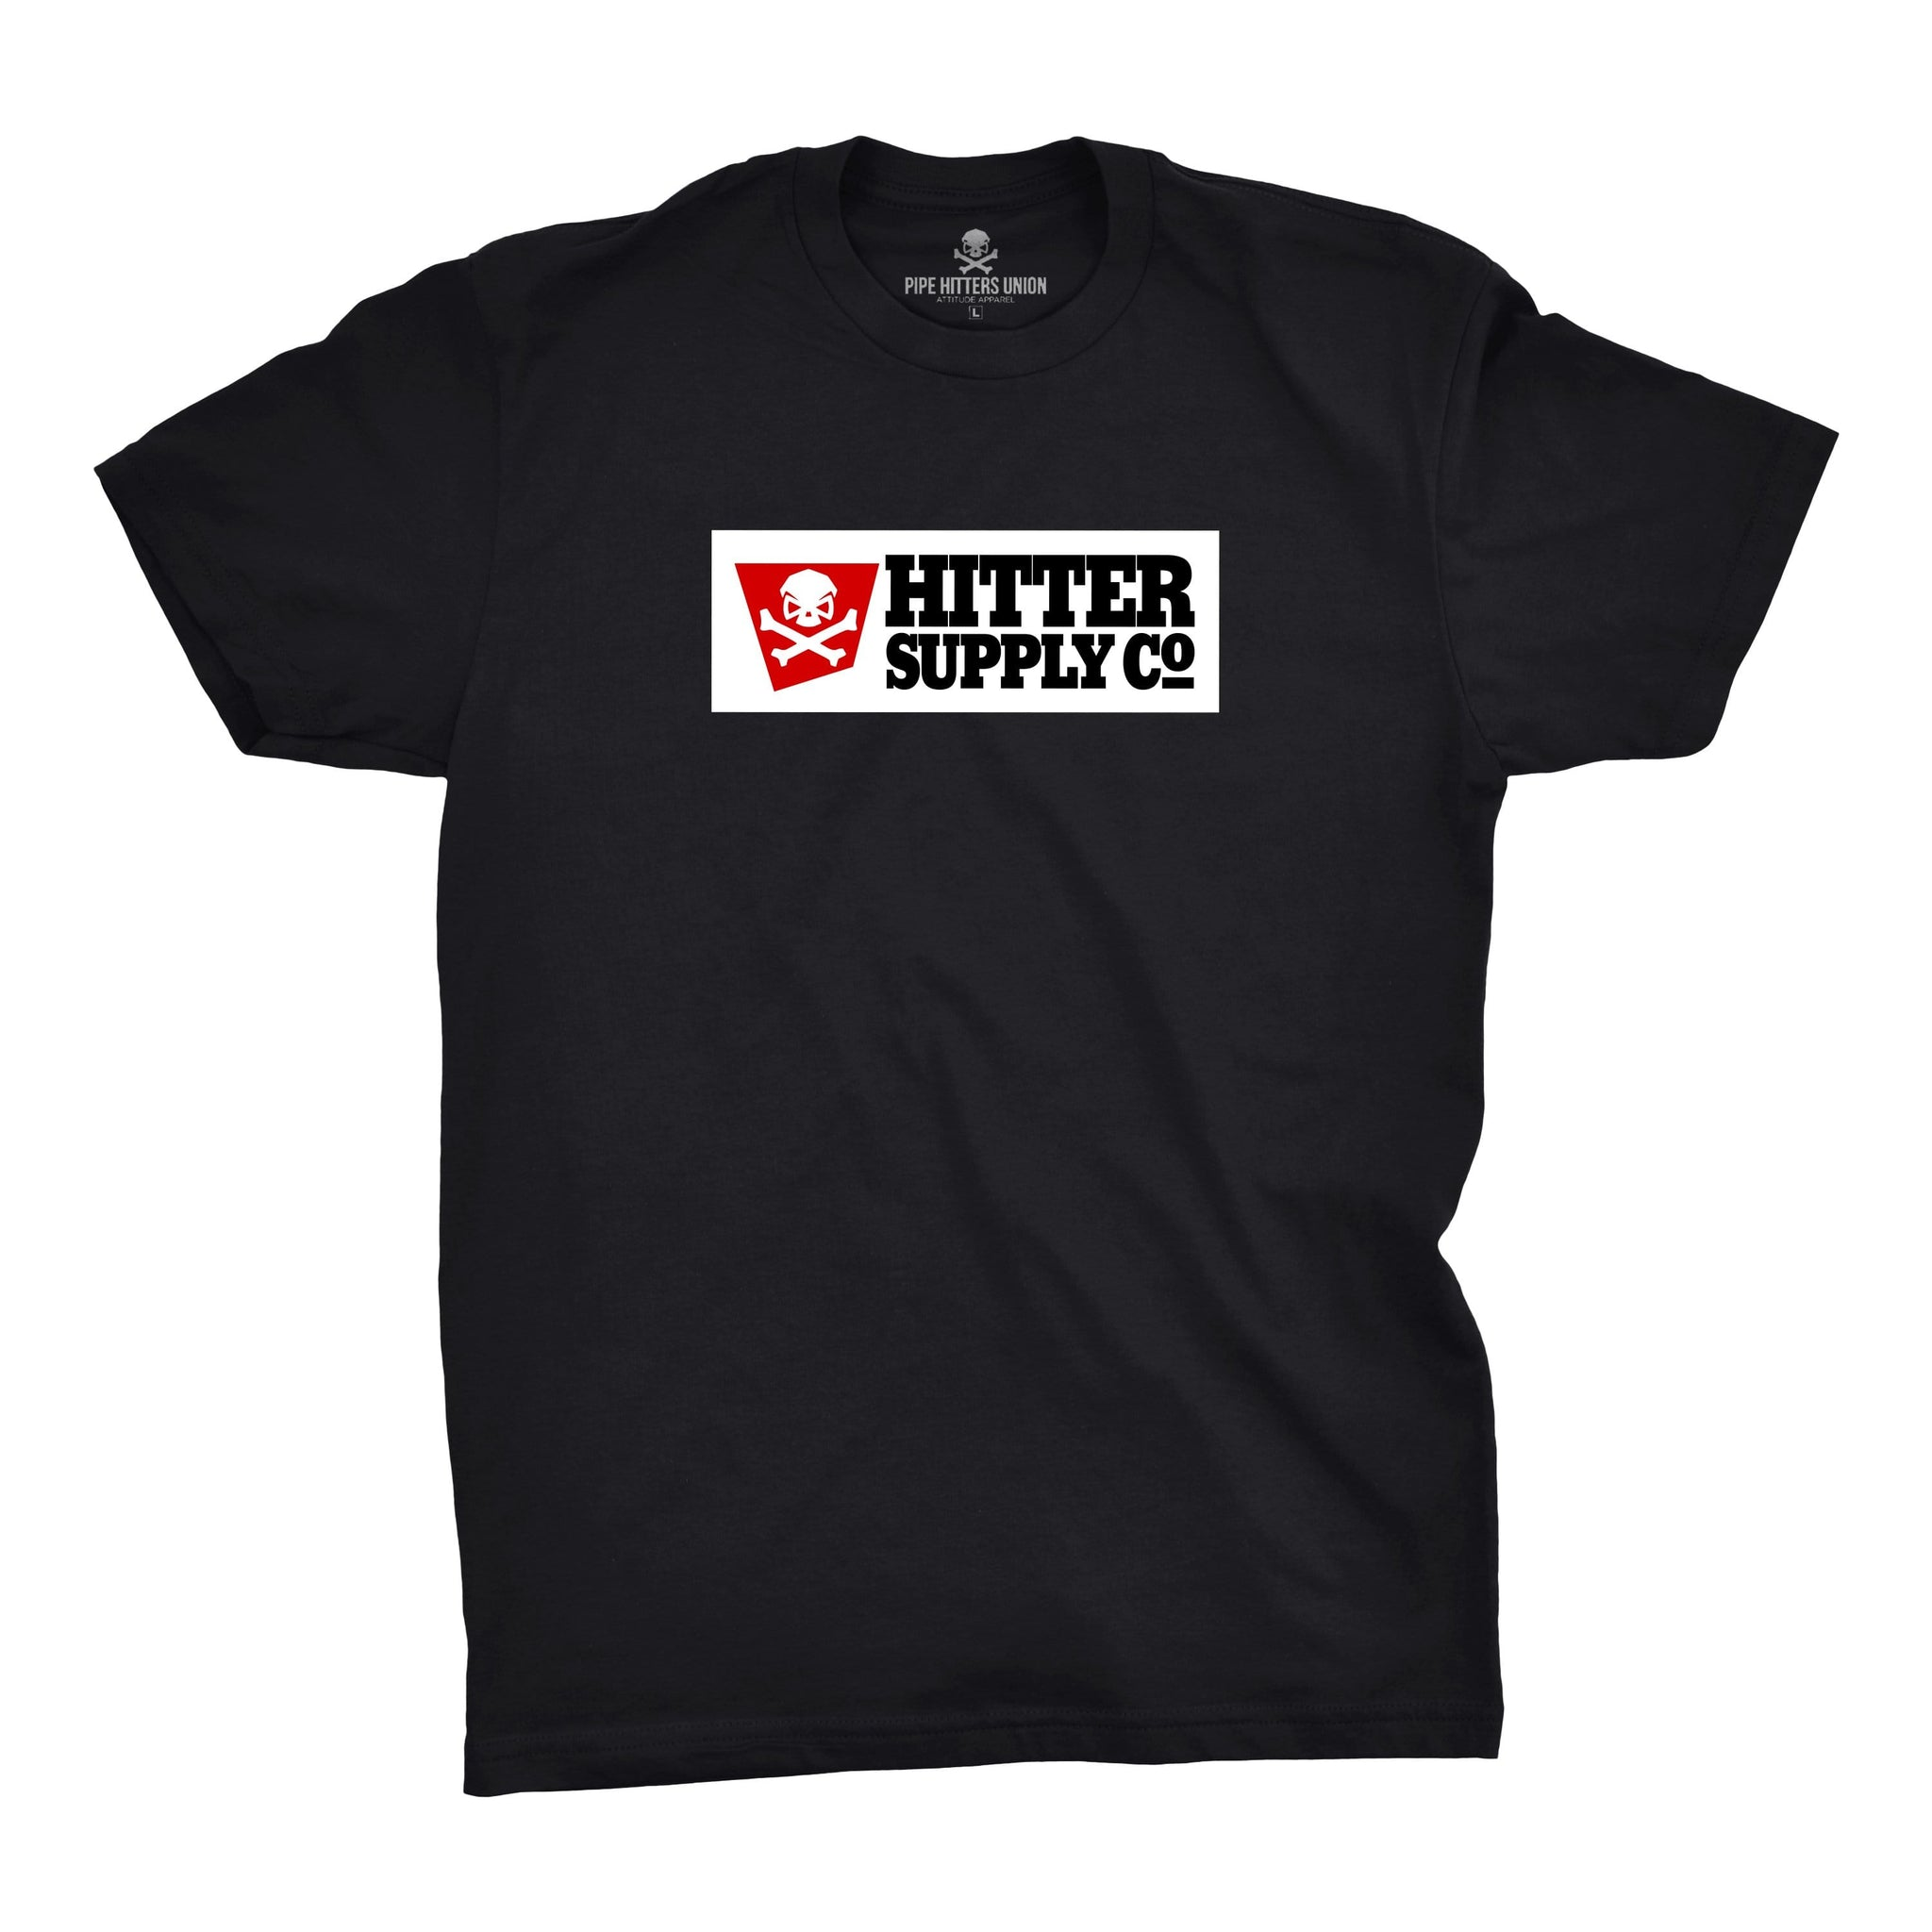 Hitter Supply Co - Pipe Hitters Union